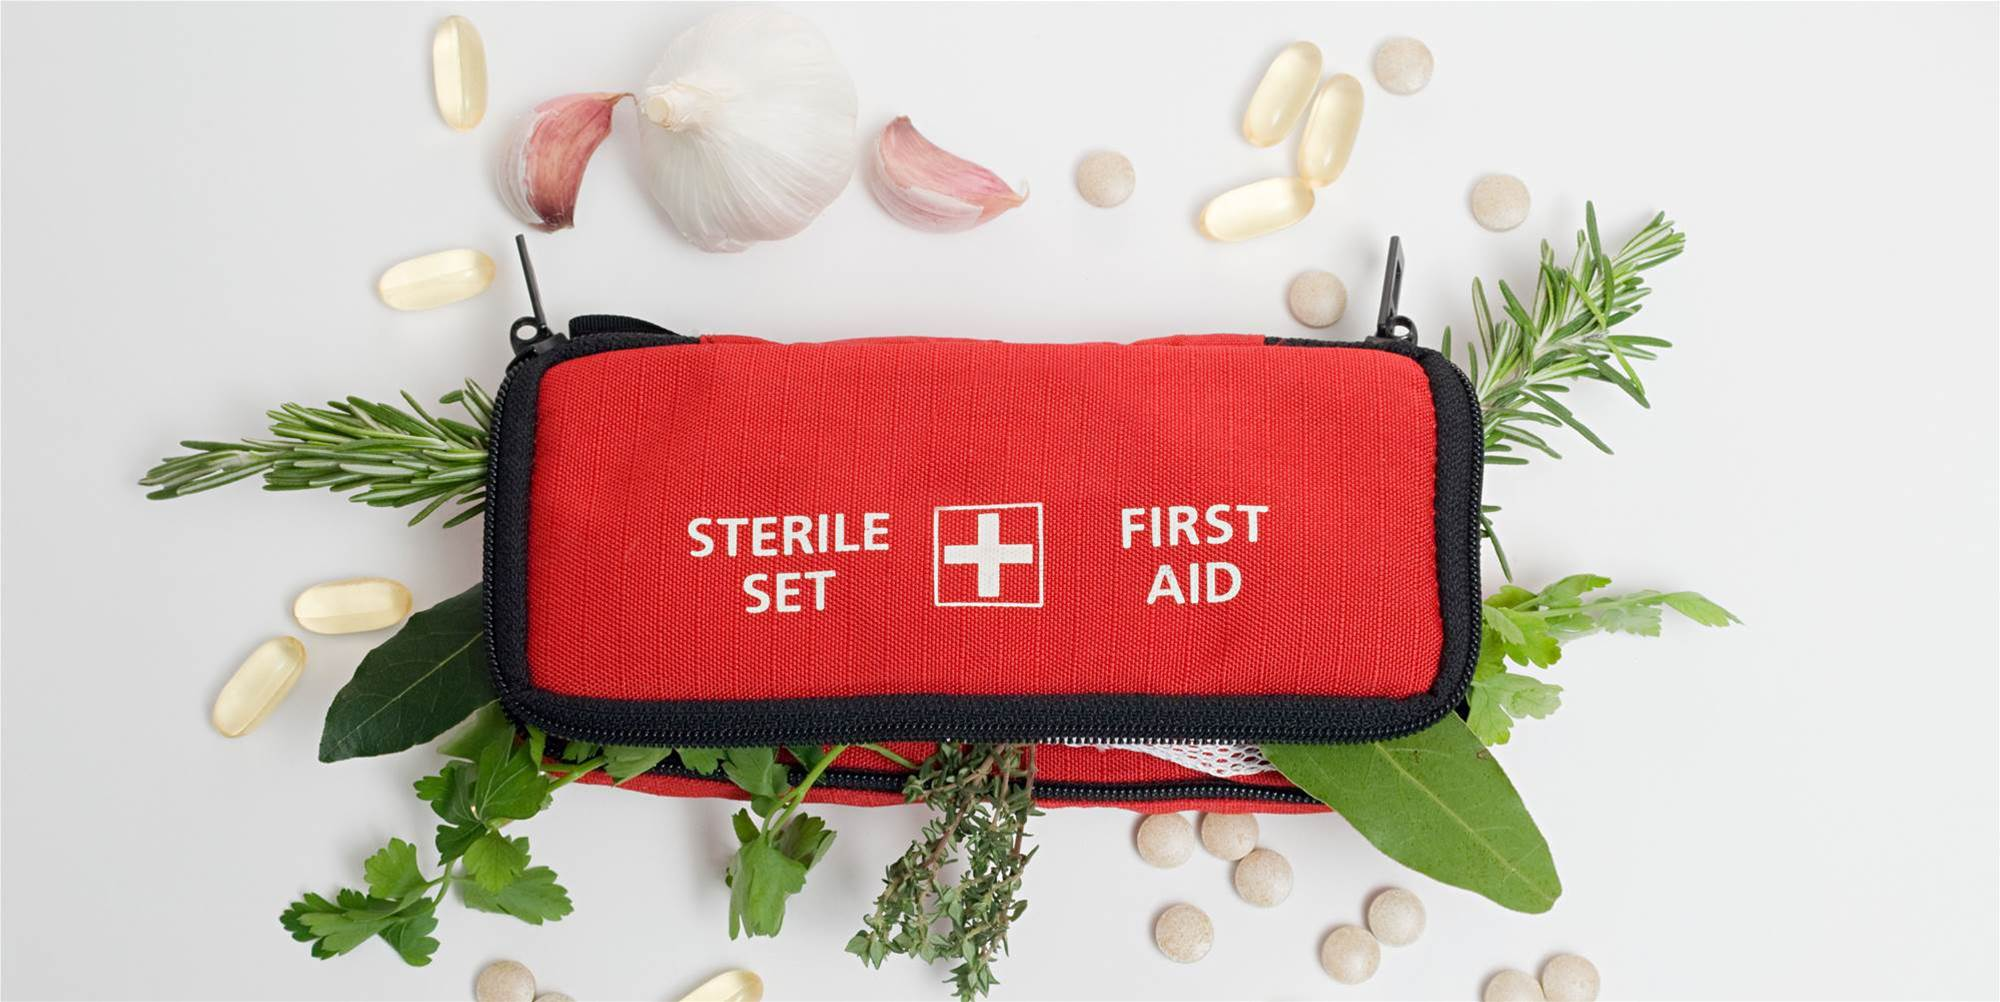 24 First Aid Supplies You Should Always Have on Hand